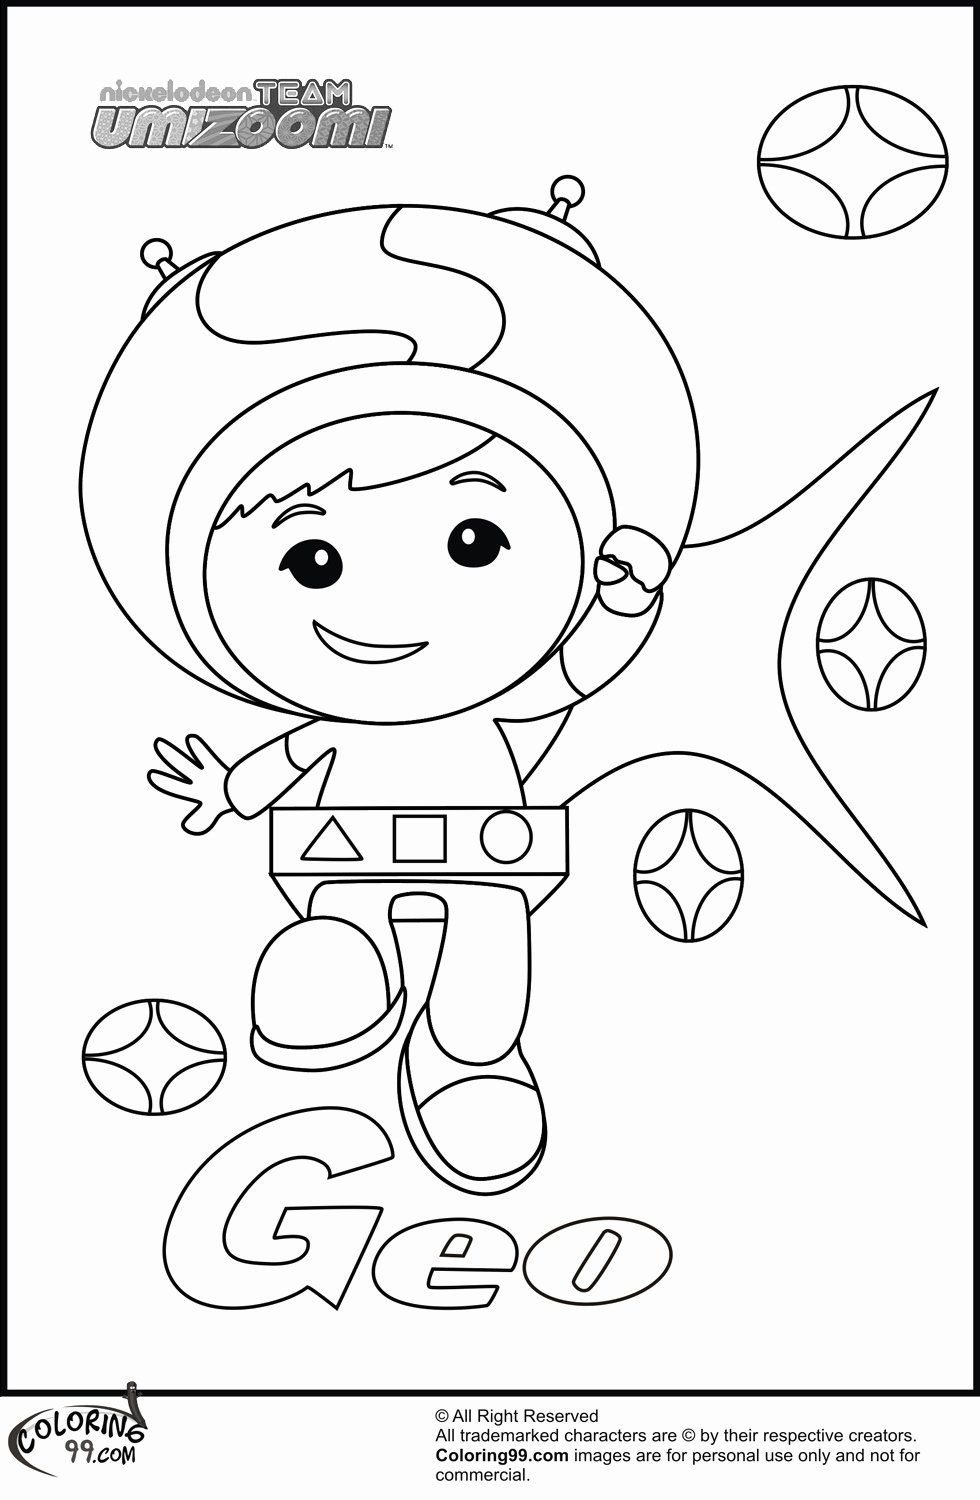 Team Umizoomi Coloring Page Beautiful Team Umizoomi Coloring Pages Disney Coloring Pages Printables Team Umizoomi Coloring Pages